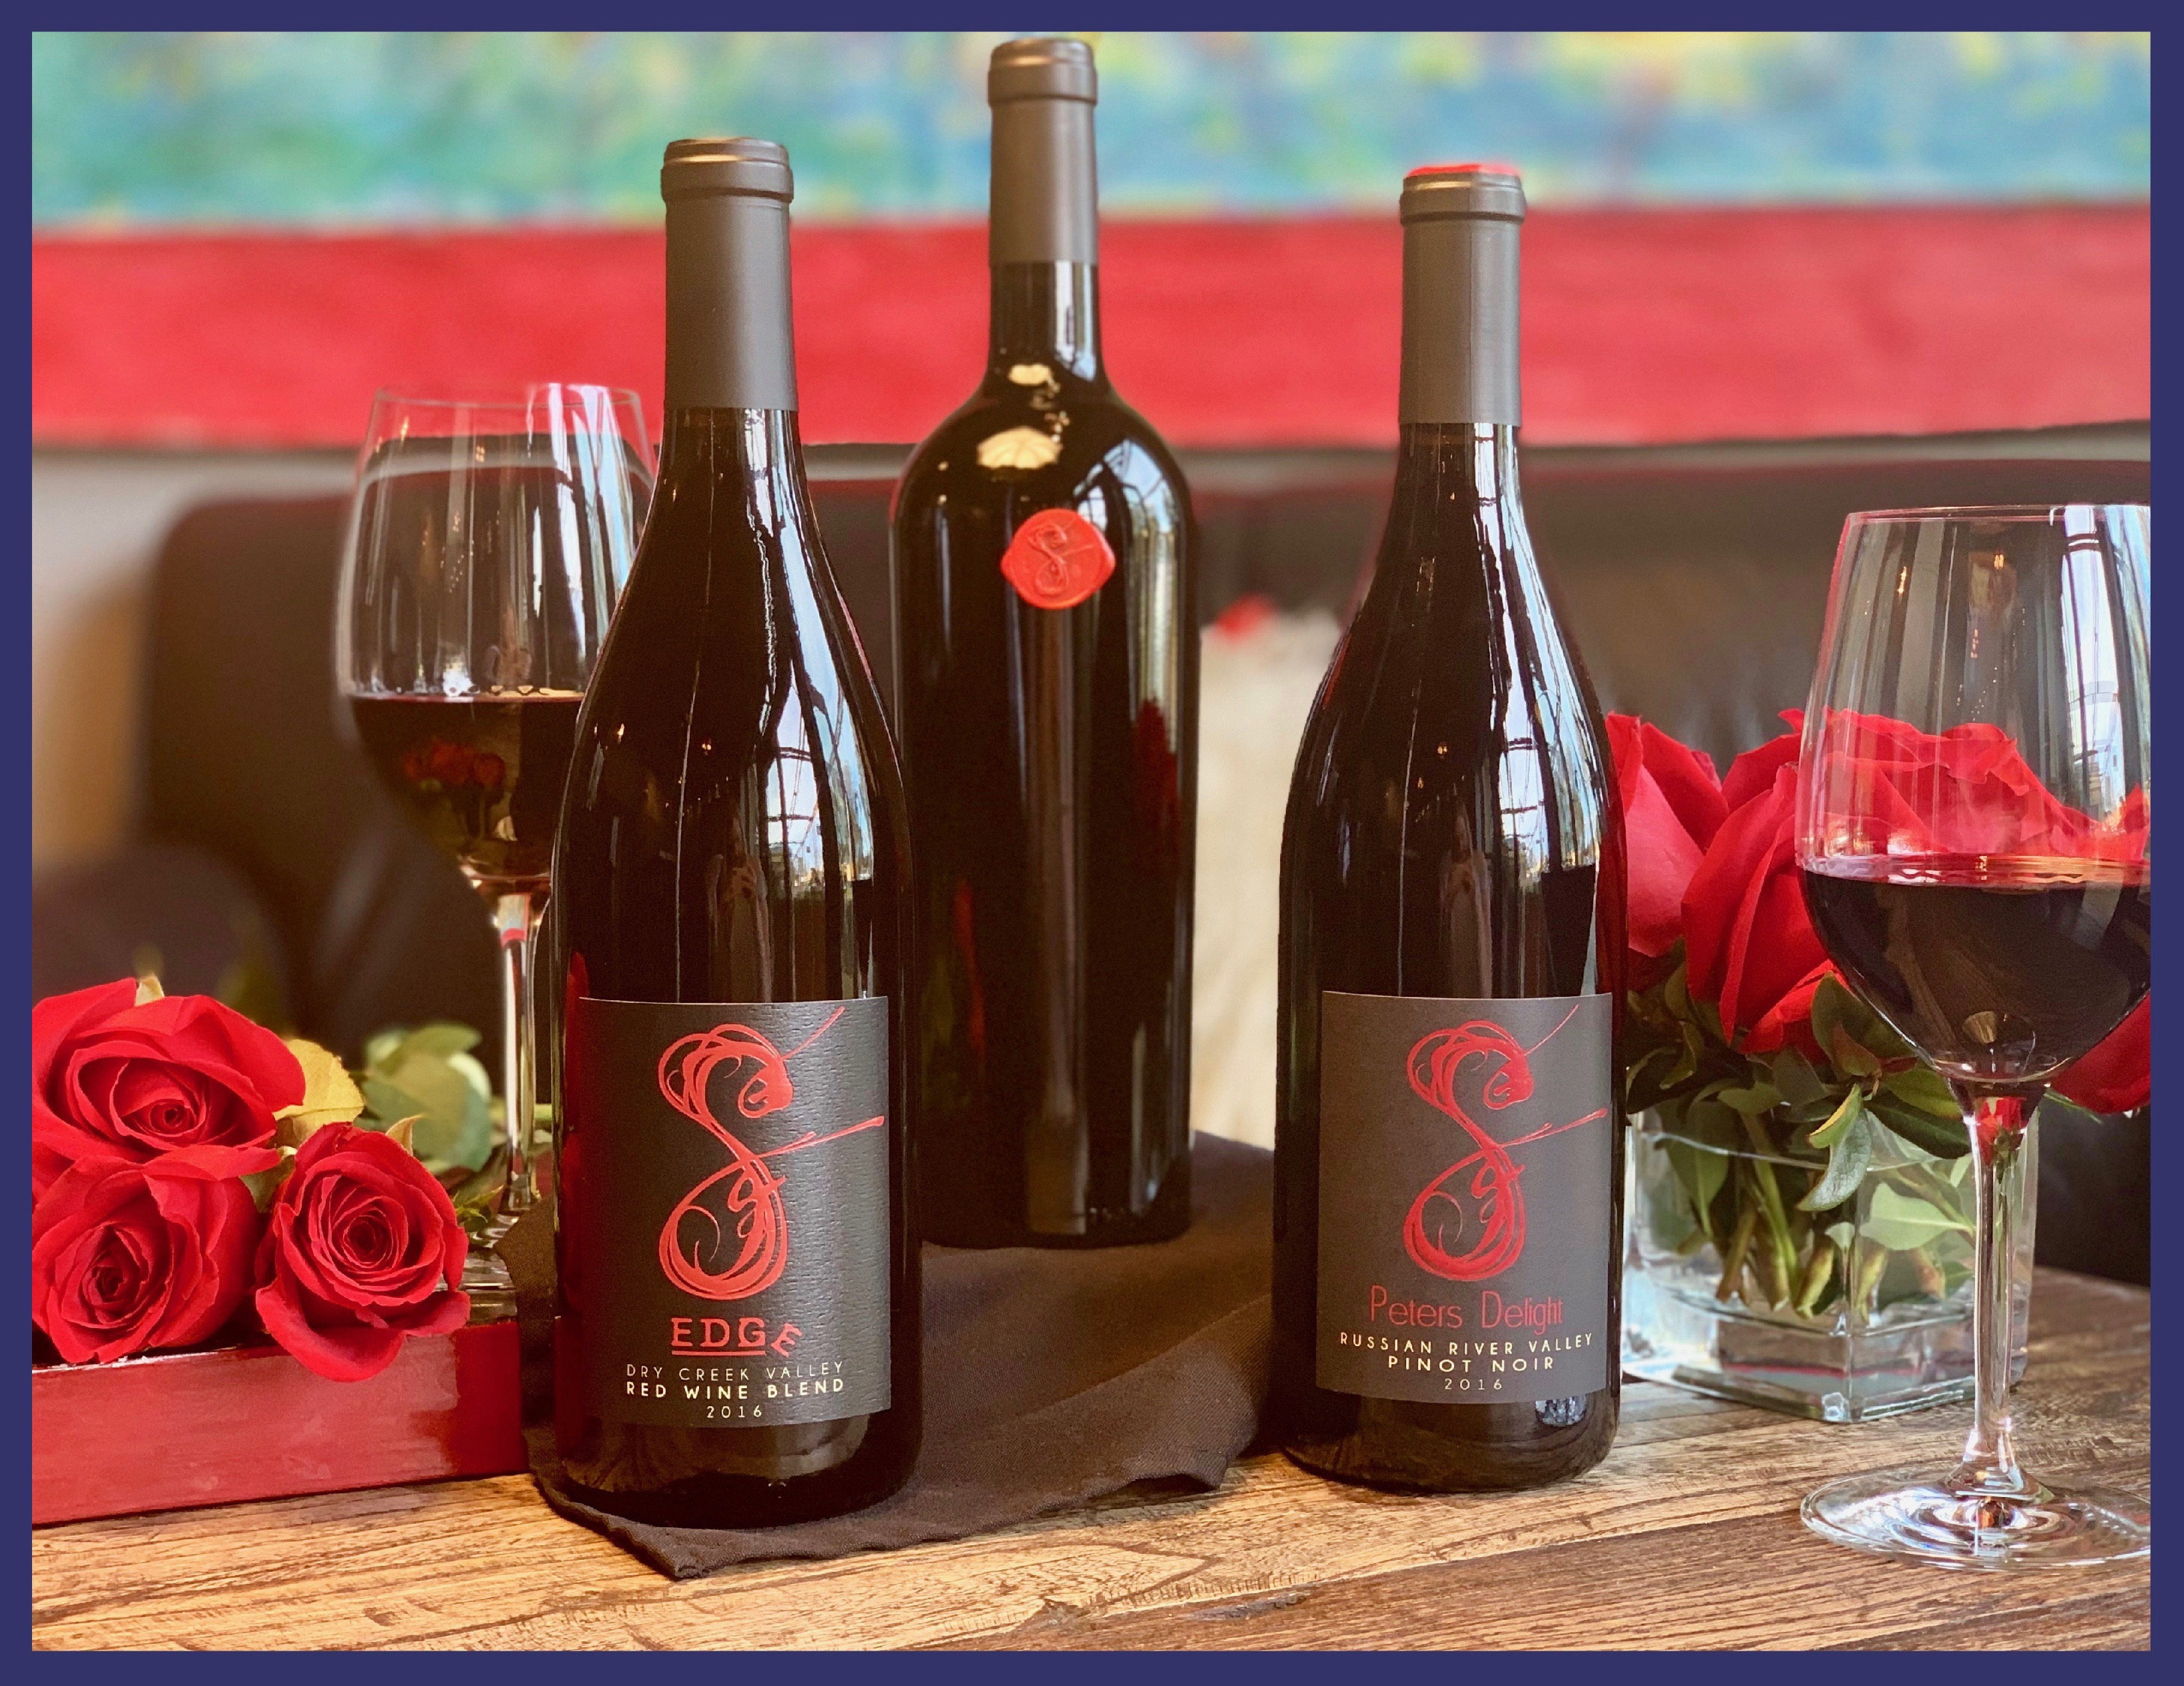 Wine Club Pickup Party - February 29th from 4-6pm